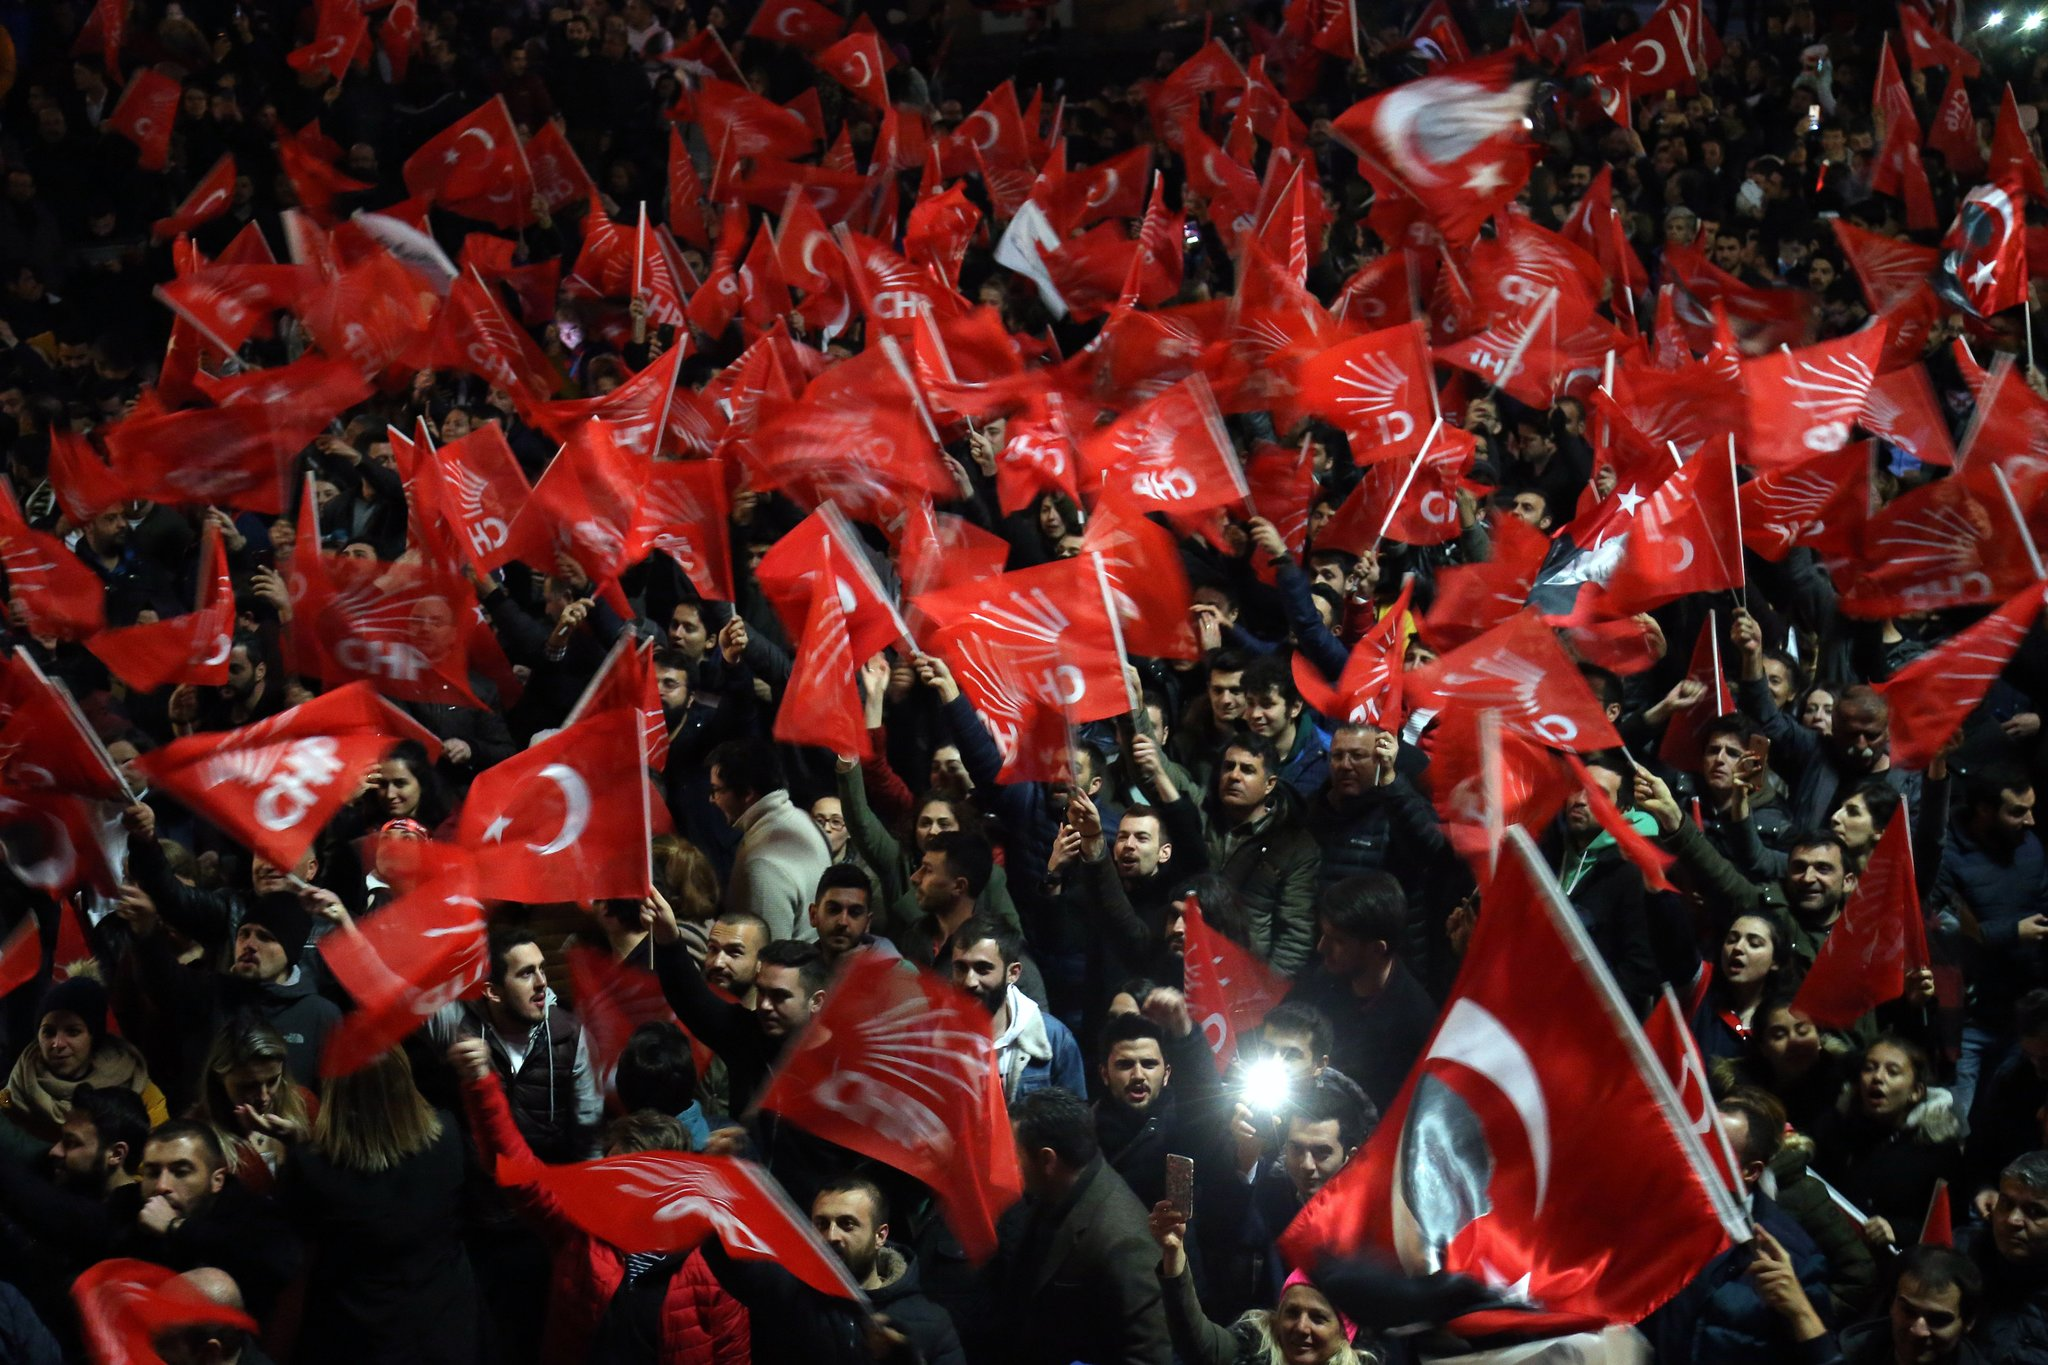 Supporters of the opposition Republican People's Party celebrating in Ankara, Turkey, on Sunday. Credit EPA, via Shutterstock